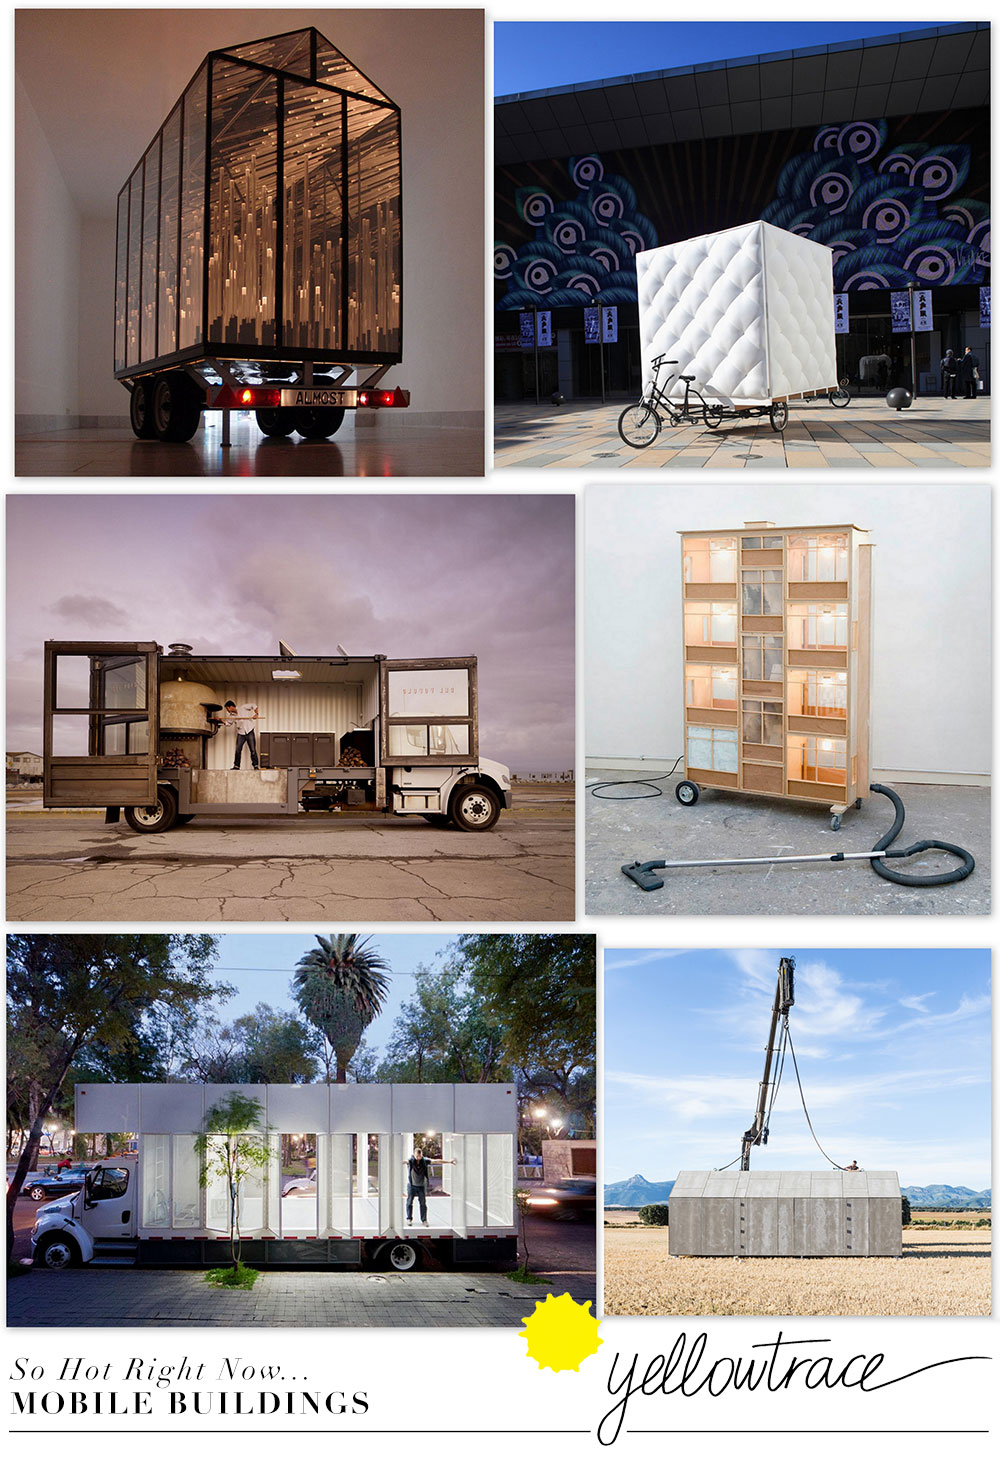 So Hot Right Now: Mobile Buildings Design Trend, curated by Yellowtrace.